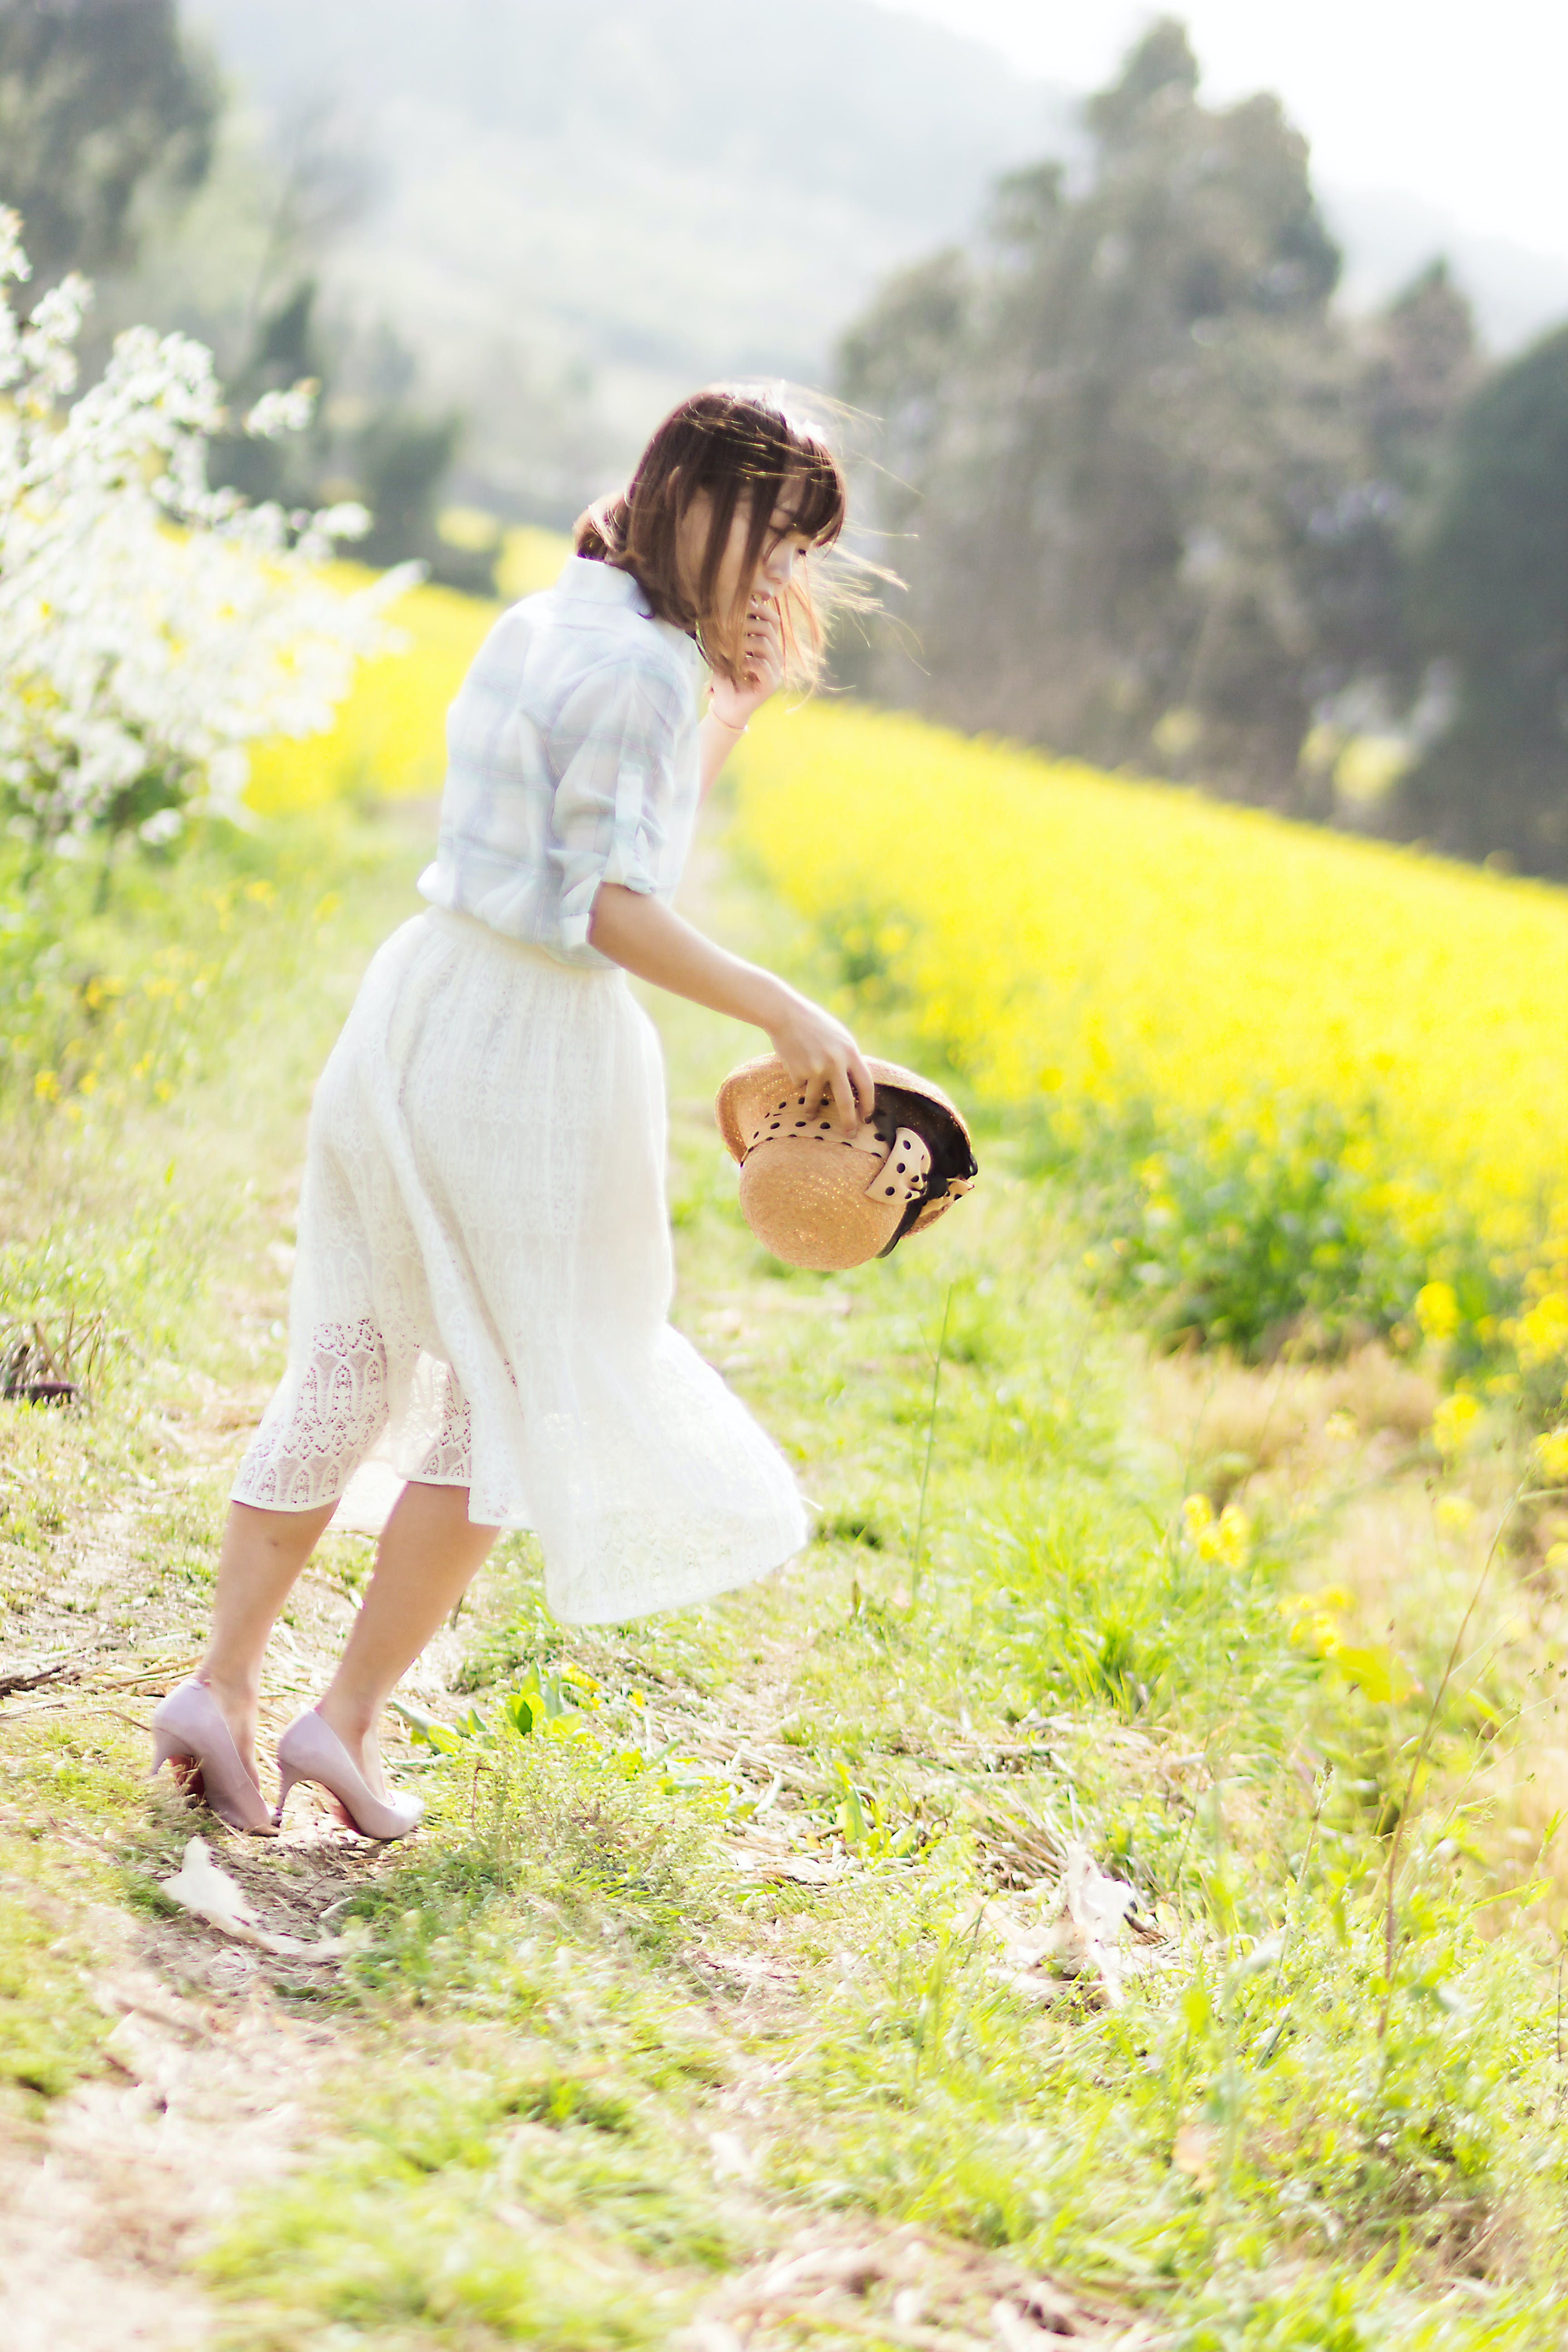 Free stock photo of person, women, countryside, lovely